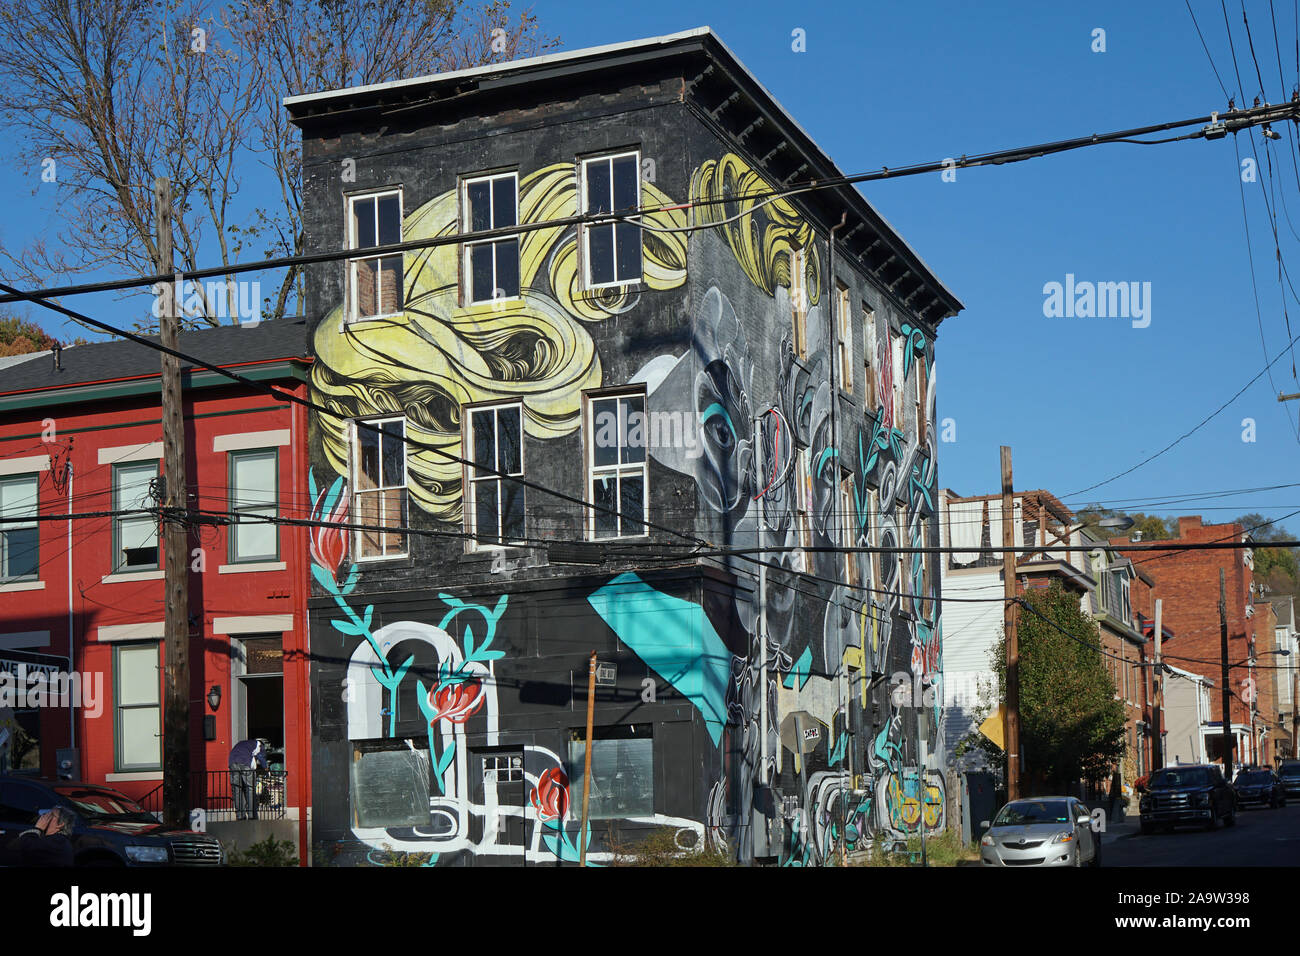 PITTSBURGH - NOVEMBER 2019: The Randyland area of the city is a a flamboyant outdoor extravaganza of random  pop art painted on house walls. Stock Photo